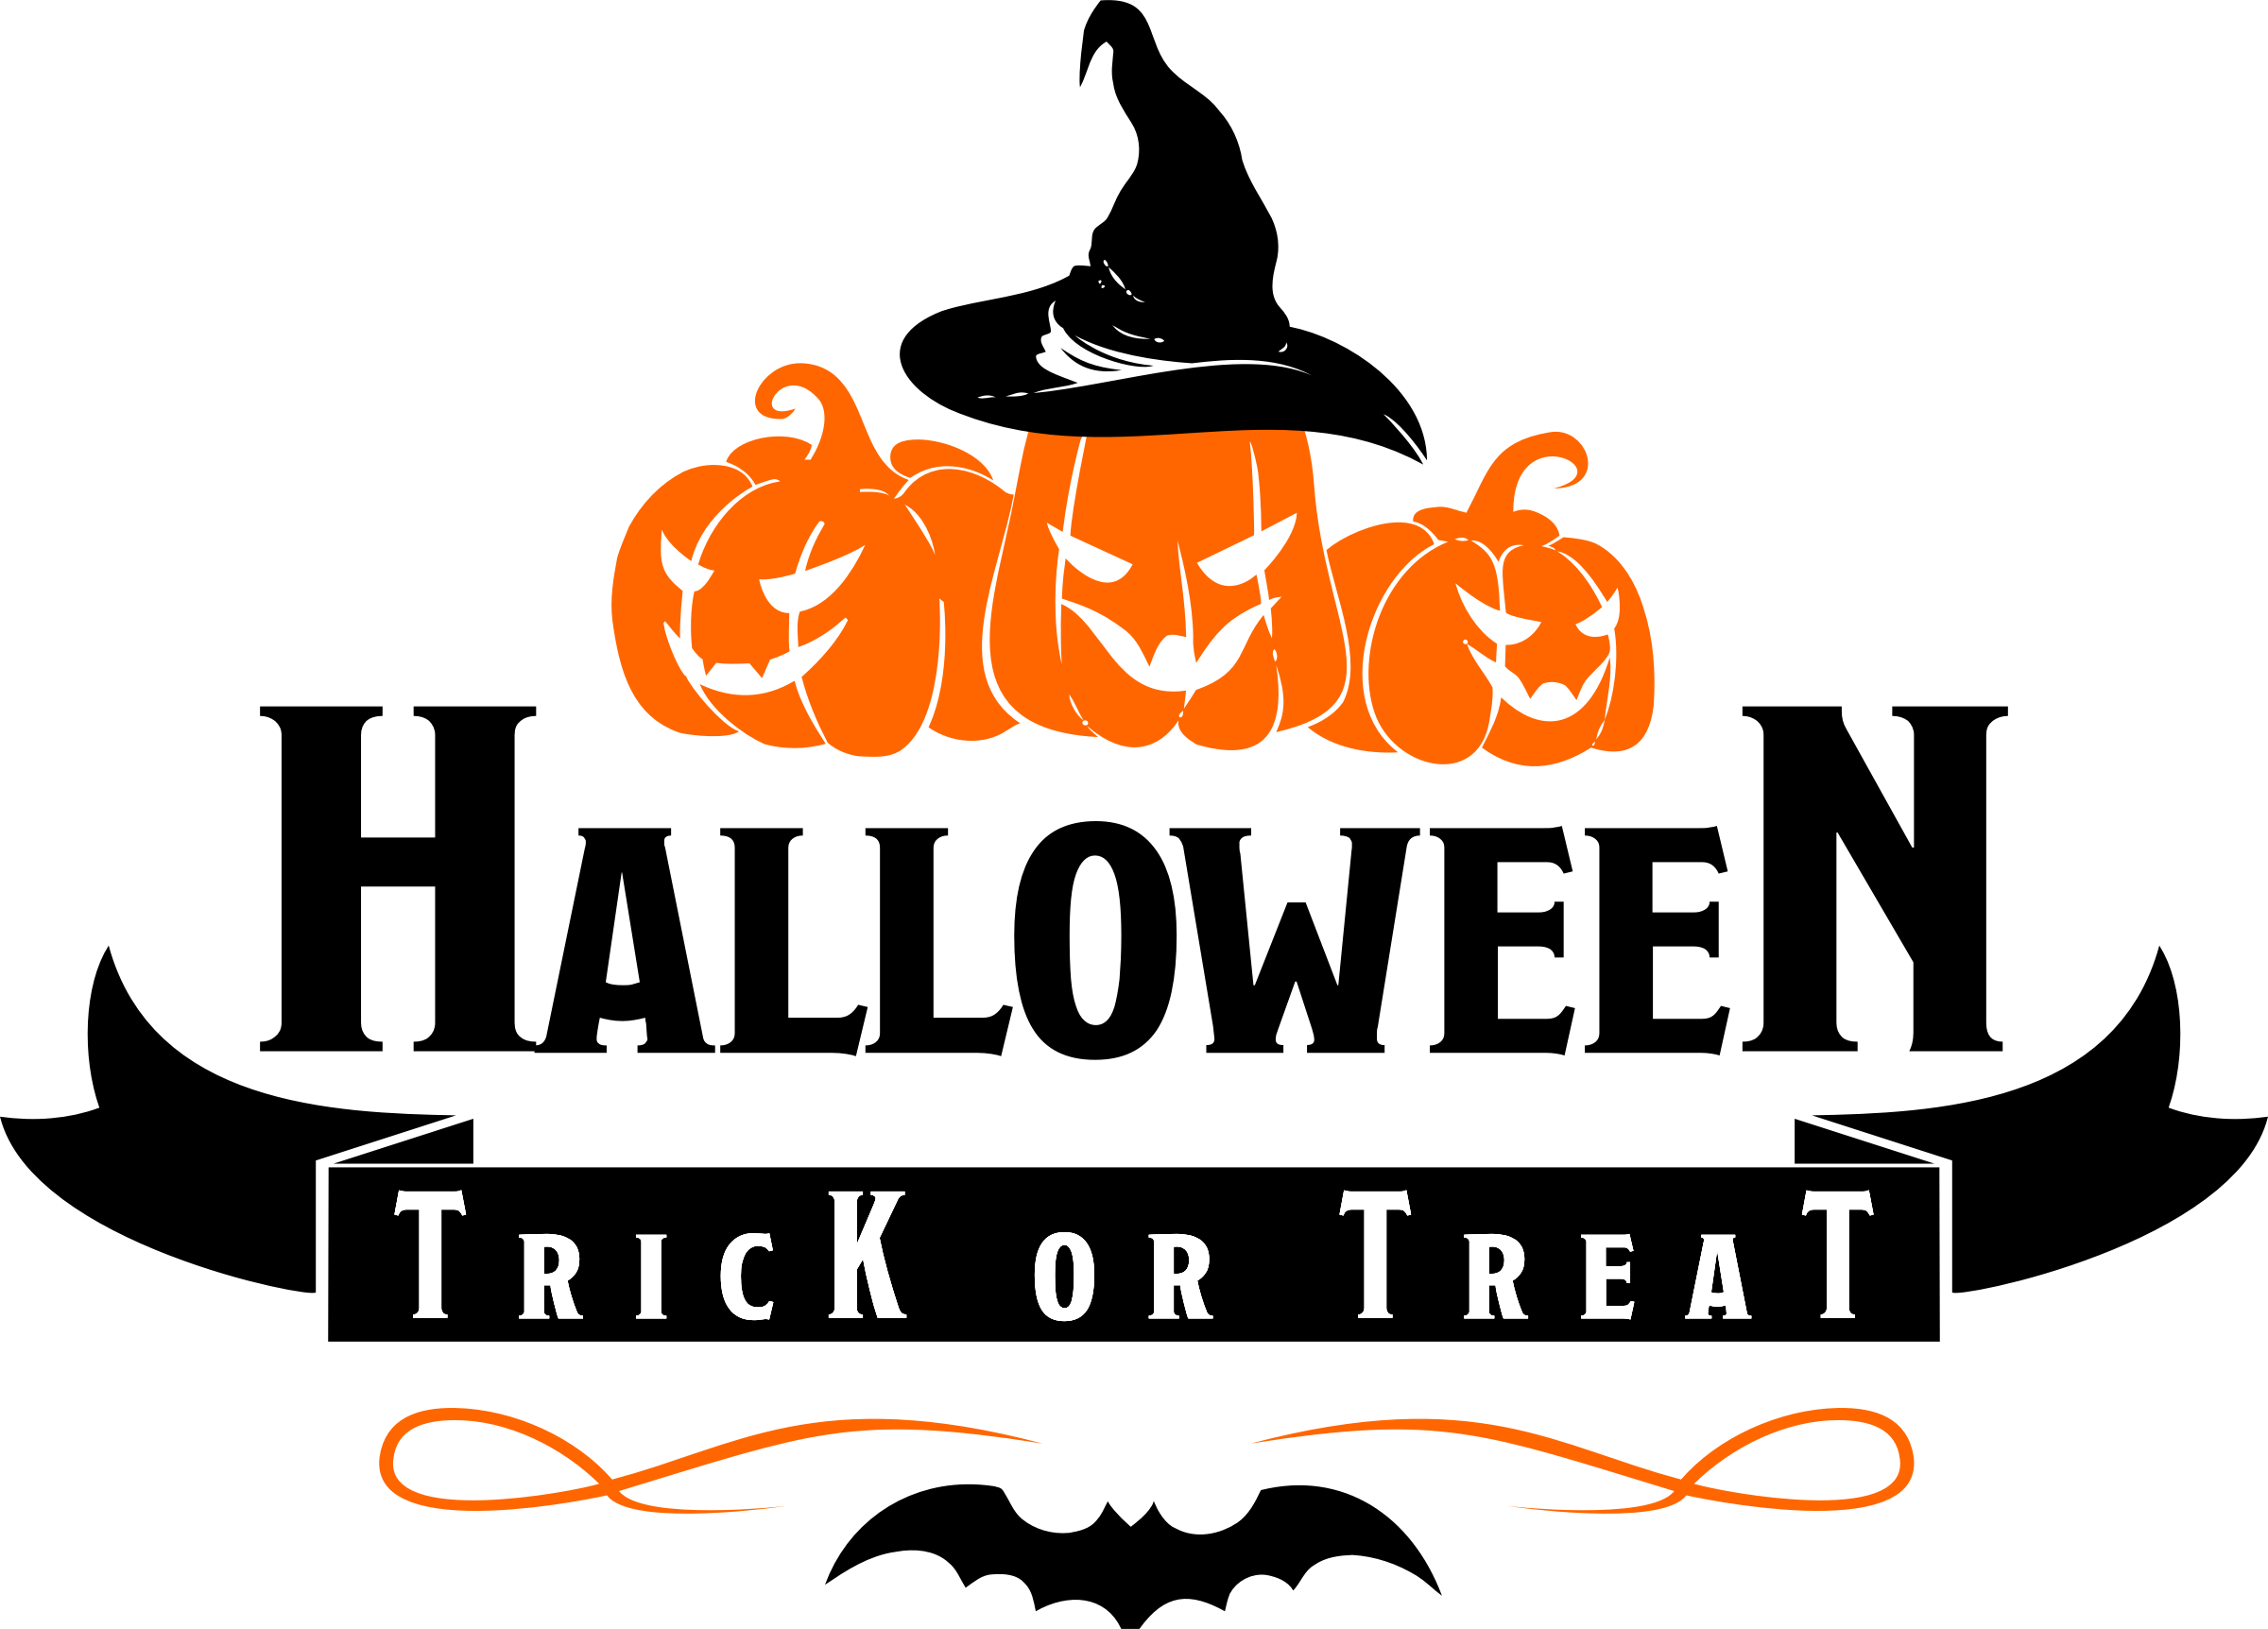 Clipart - Halloween - Trick or Treat Logo